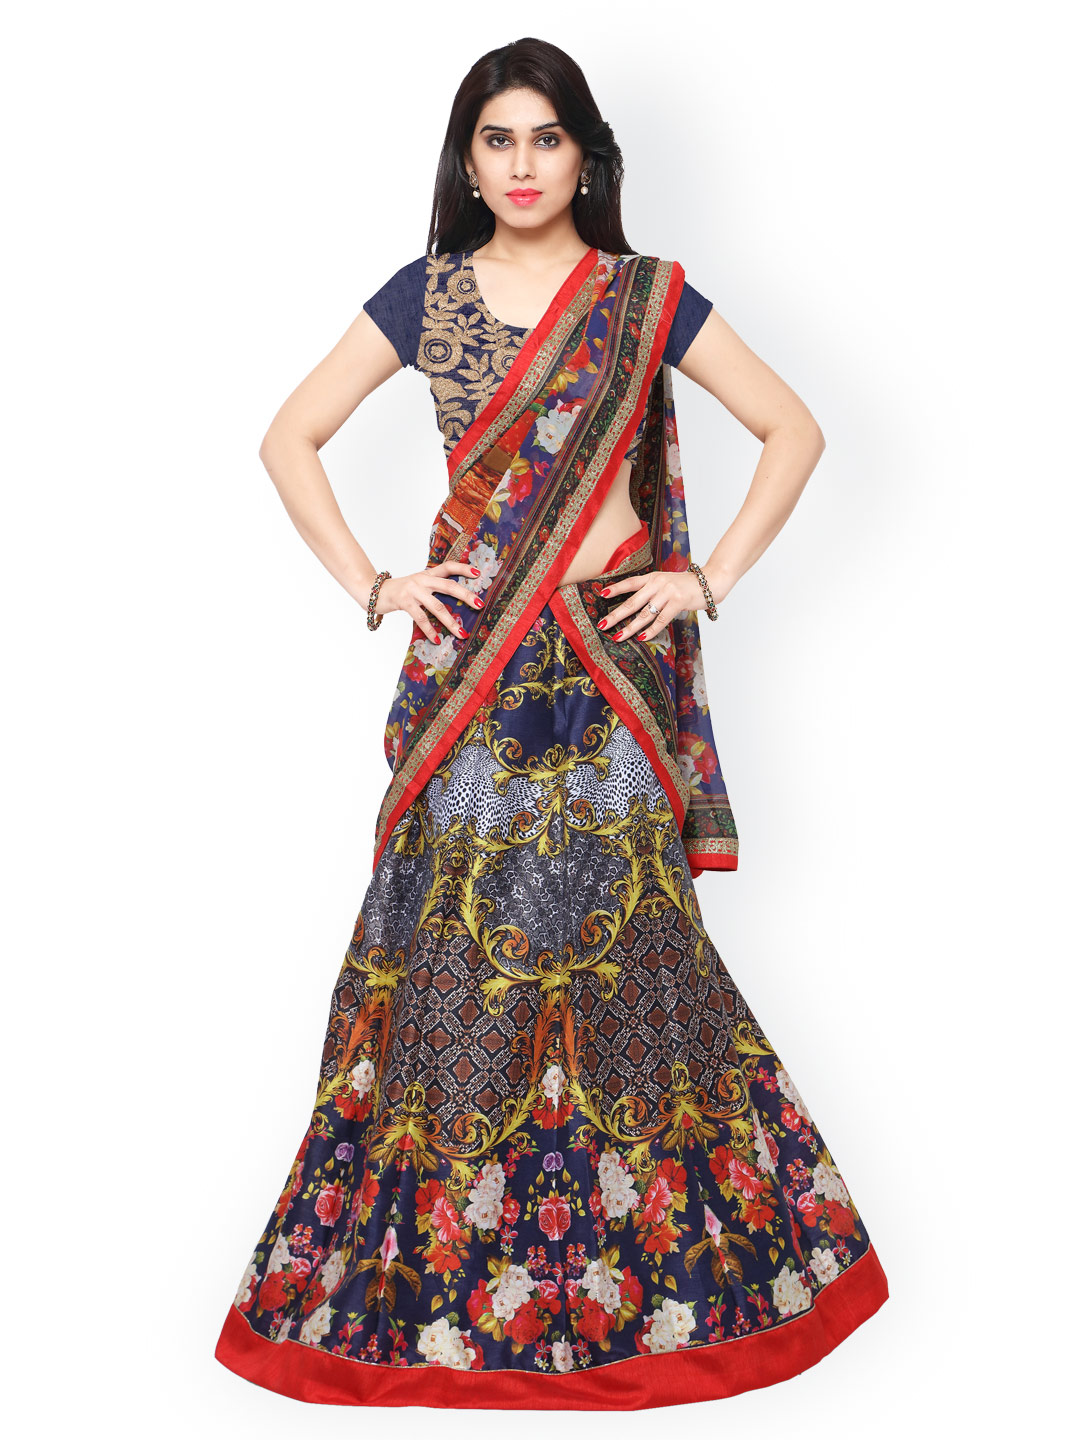 Saree mall Multicoloured Printed Semi-Stitched Lehenga Choli with Dupatta Price in India